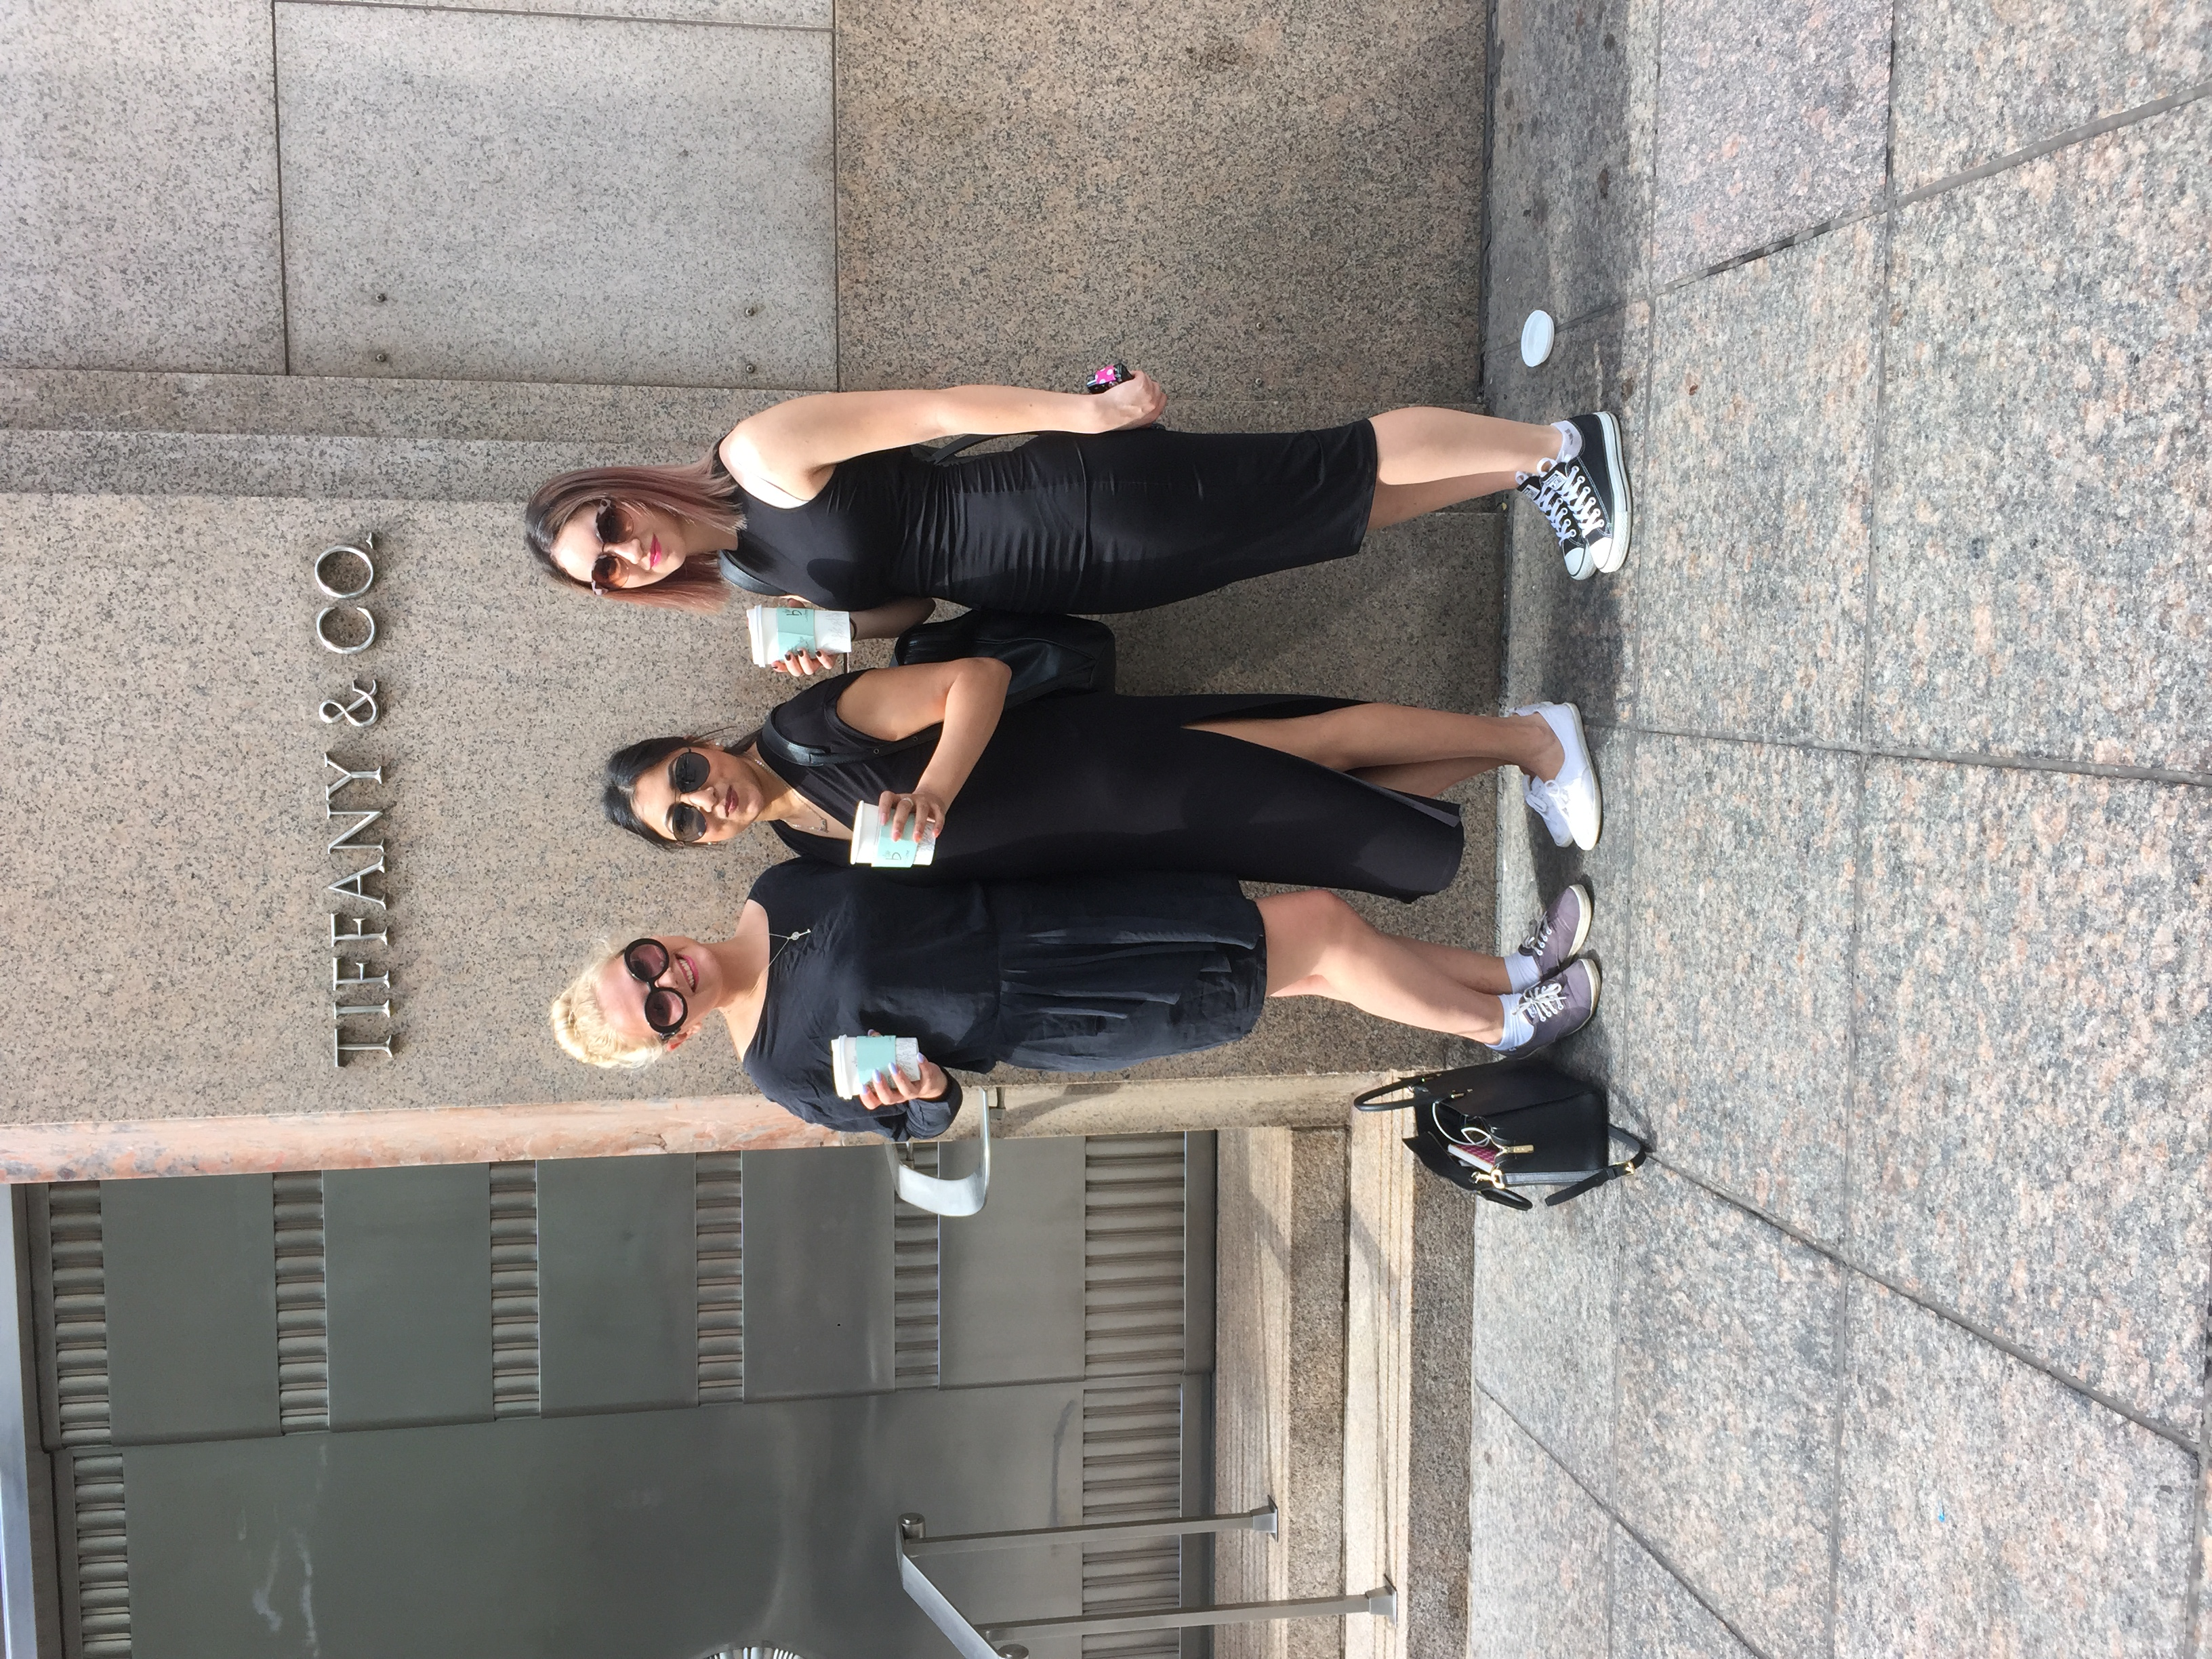 """The """"fashion girls""""-- Olivia, Jessica, and Michelle, reenacting Breakfast at Tiffany's by, what else, having breakfast in Audrey Hepburn outfits outsideTiffany's on 5th Avenue."""